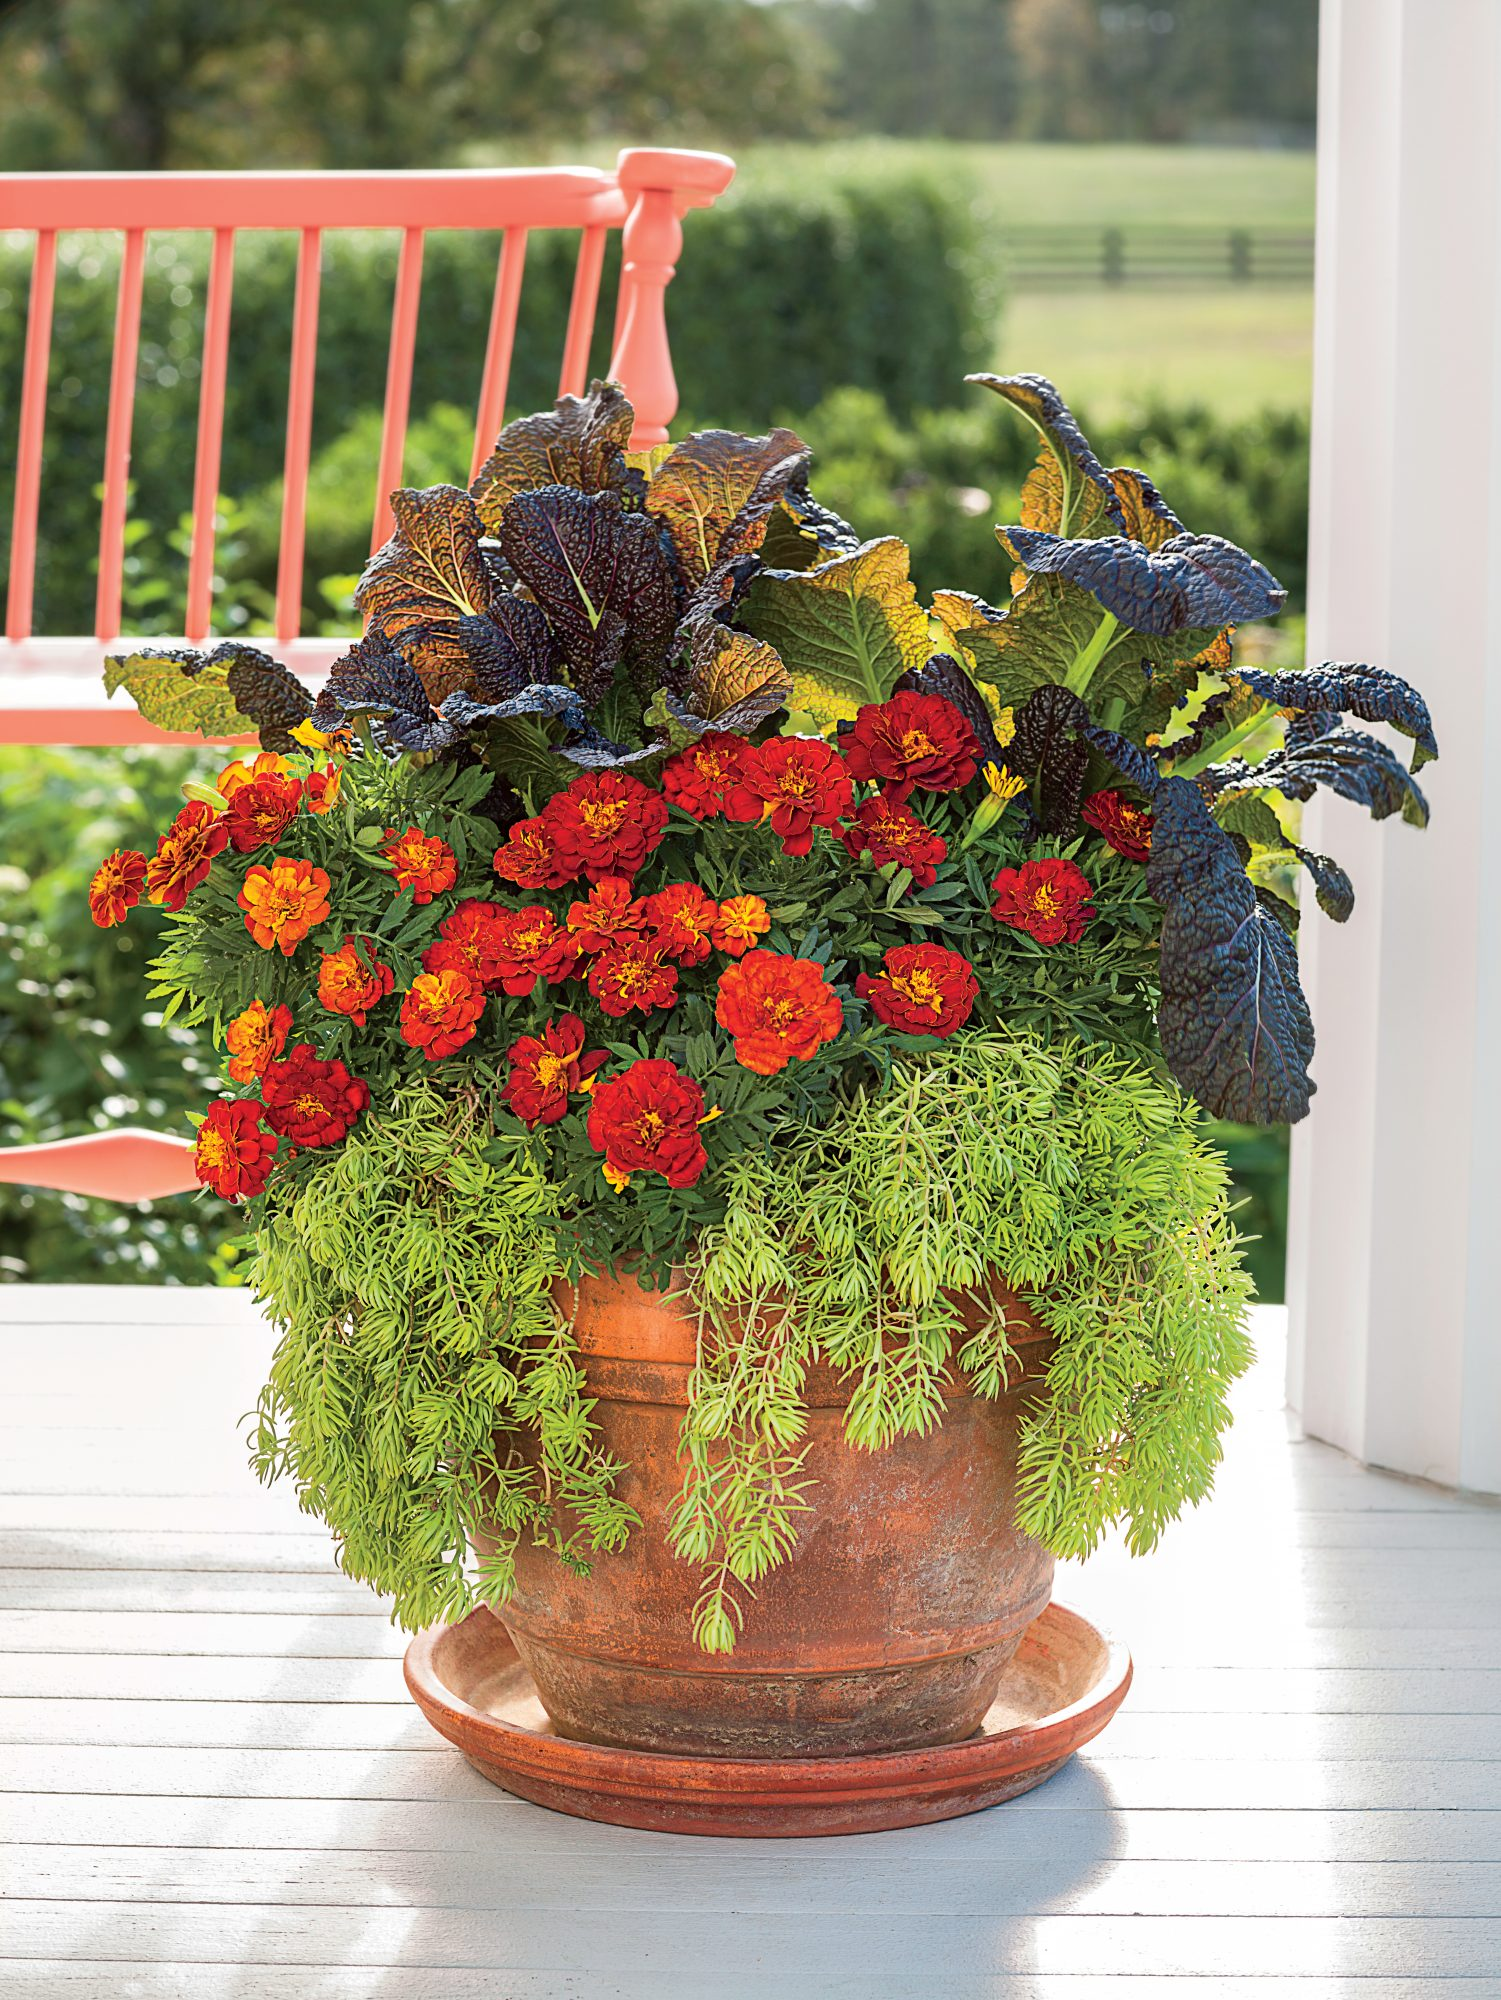 Brighten Up a Porch